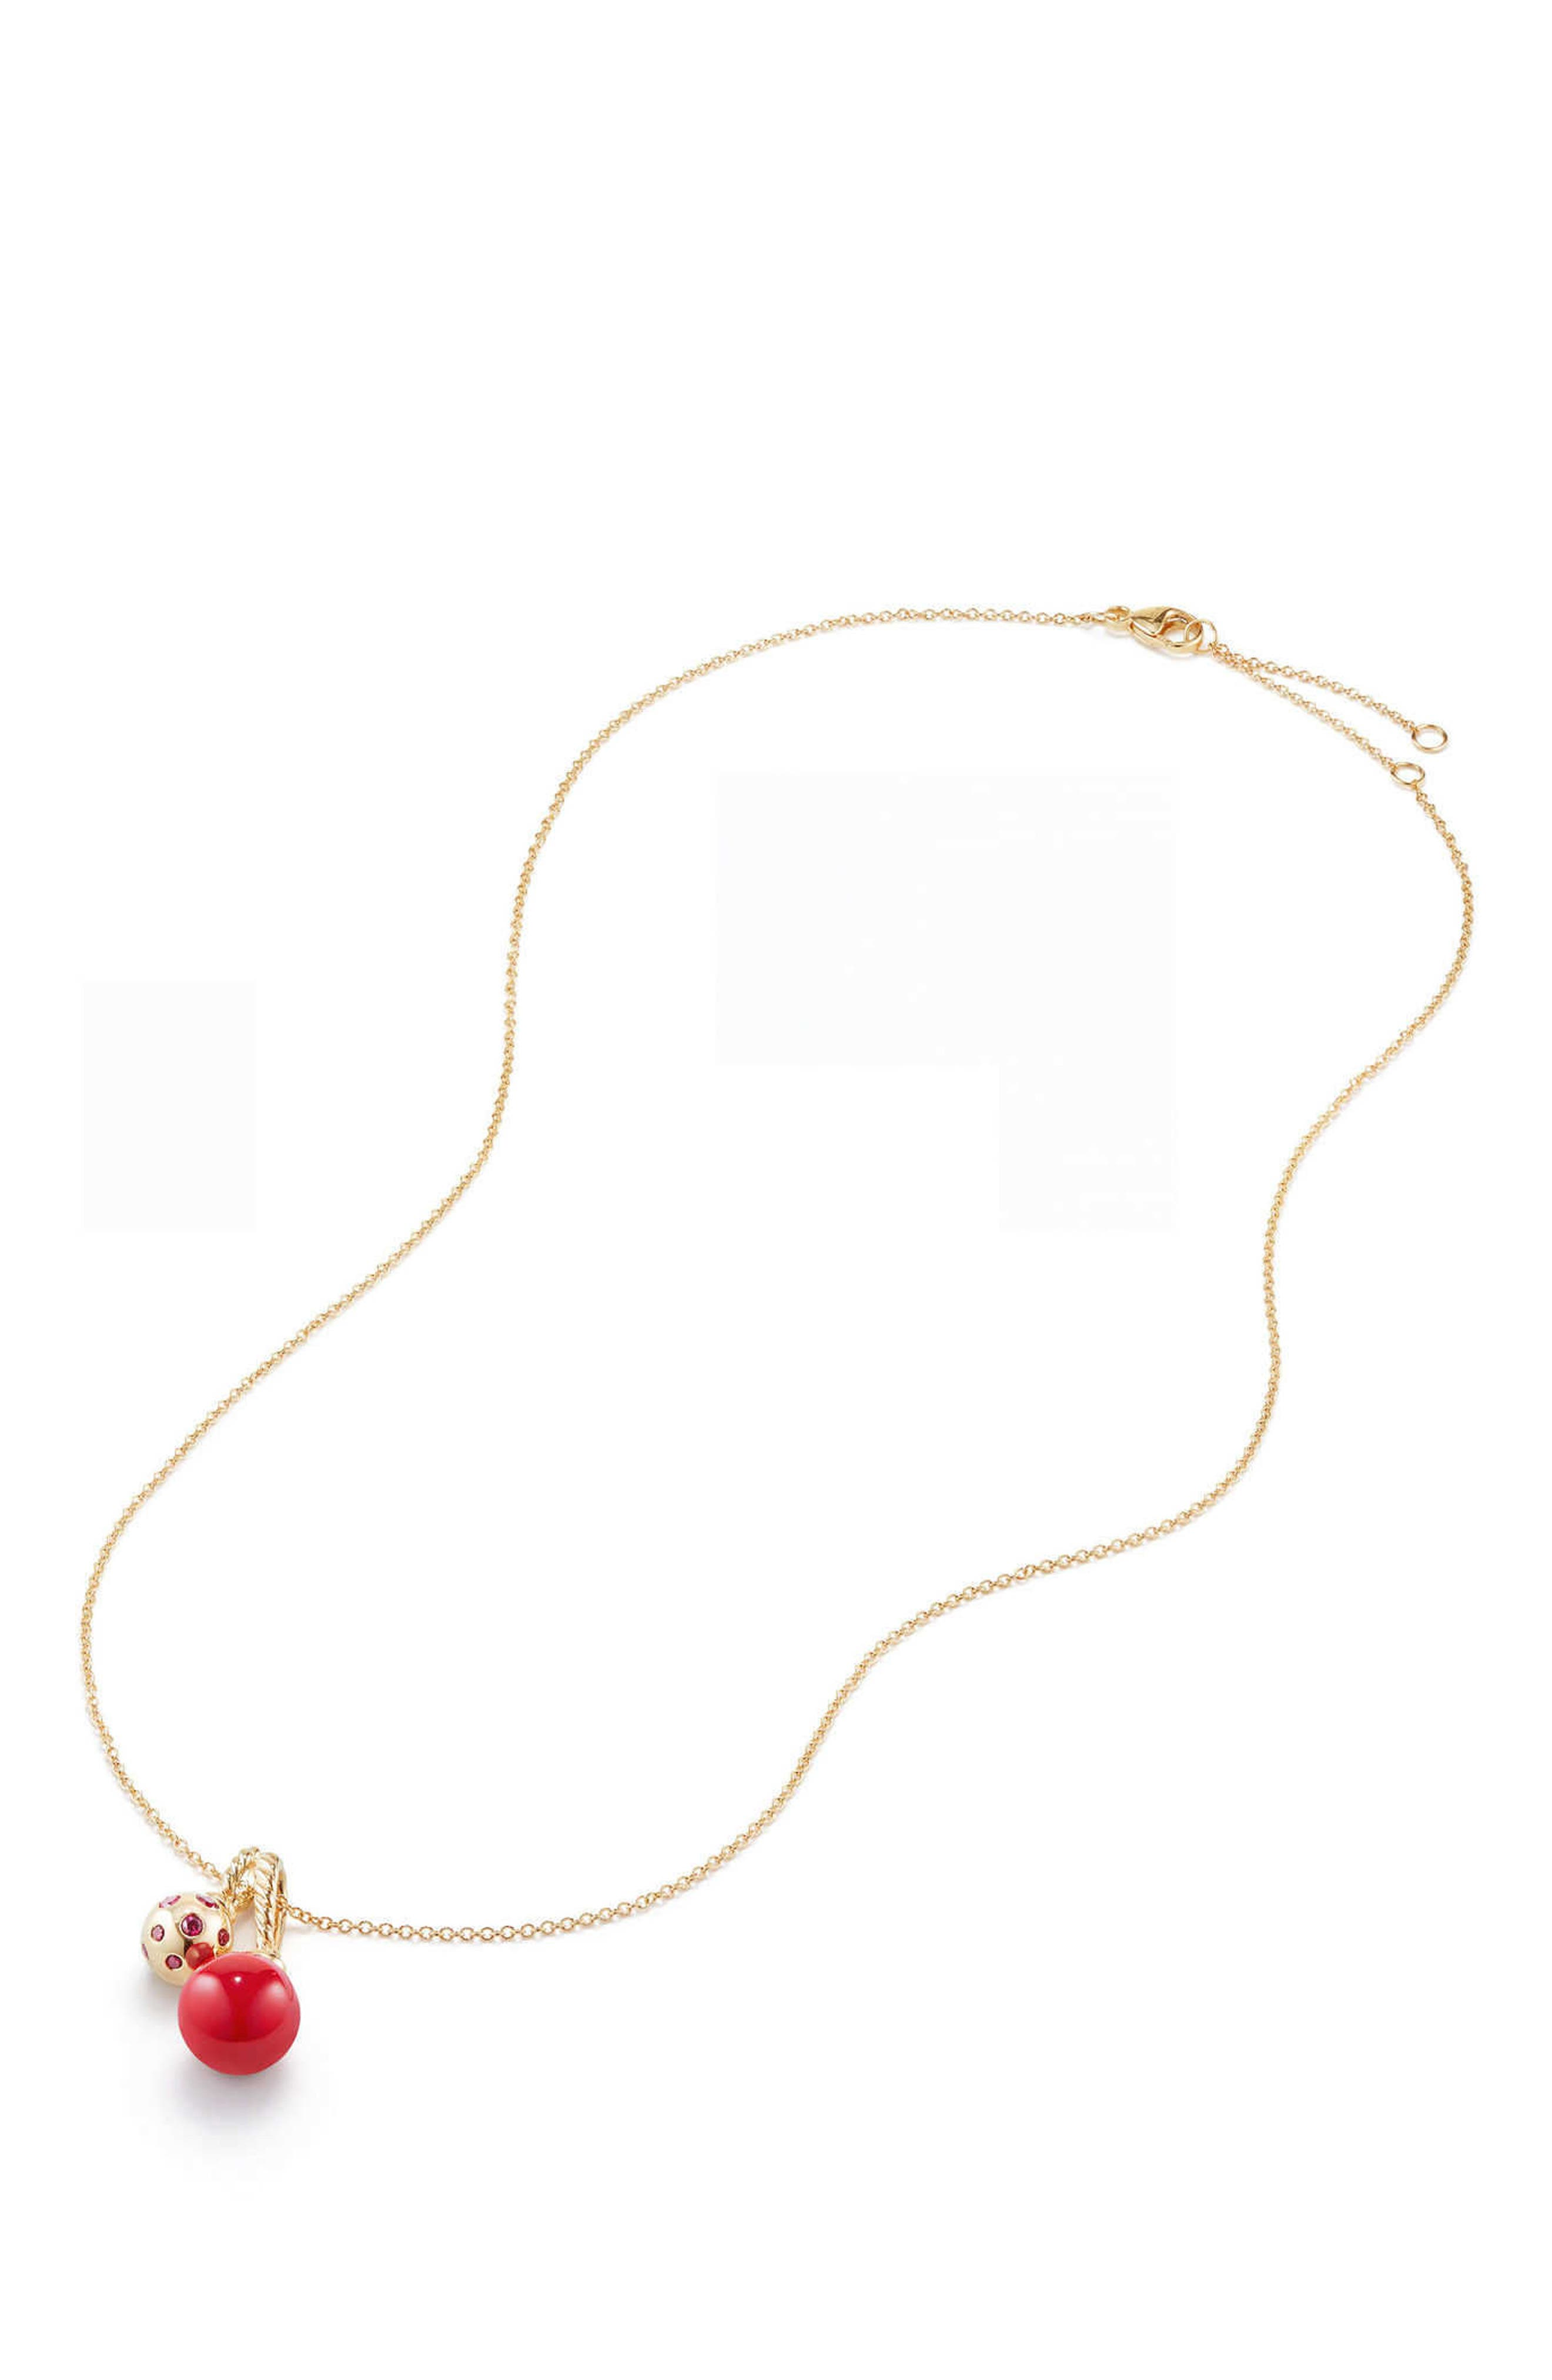 Solari Pendant Necklace in 18K Gold with Cherry Amber,                             Alternate thumbnail 2, color,                             YELLOW GOLD/ RED